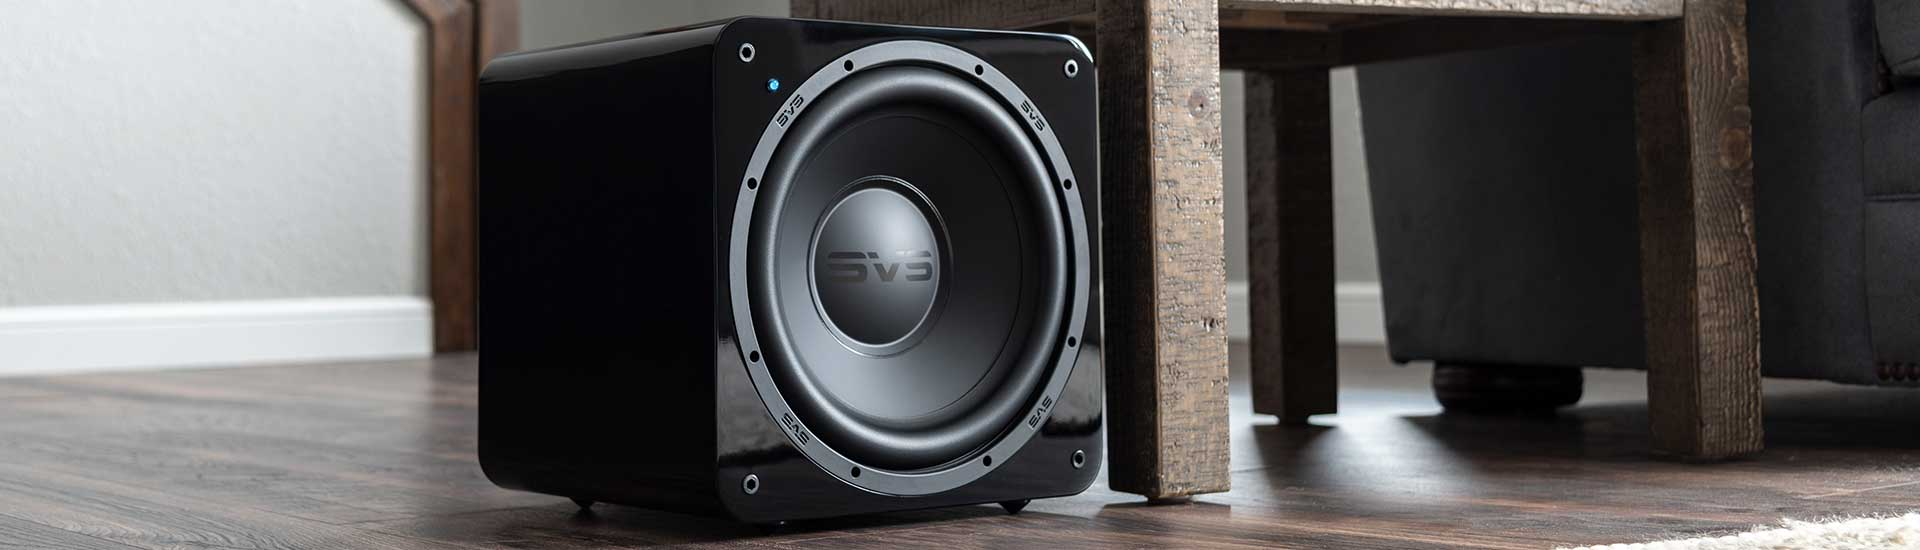 Which is Better a Ported or Sealed Subwoofer?